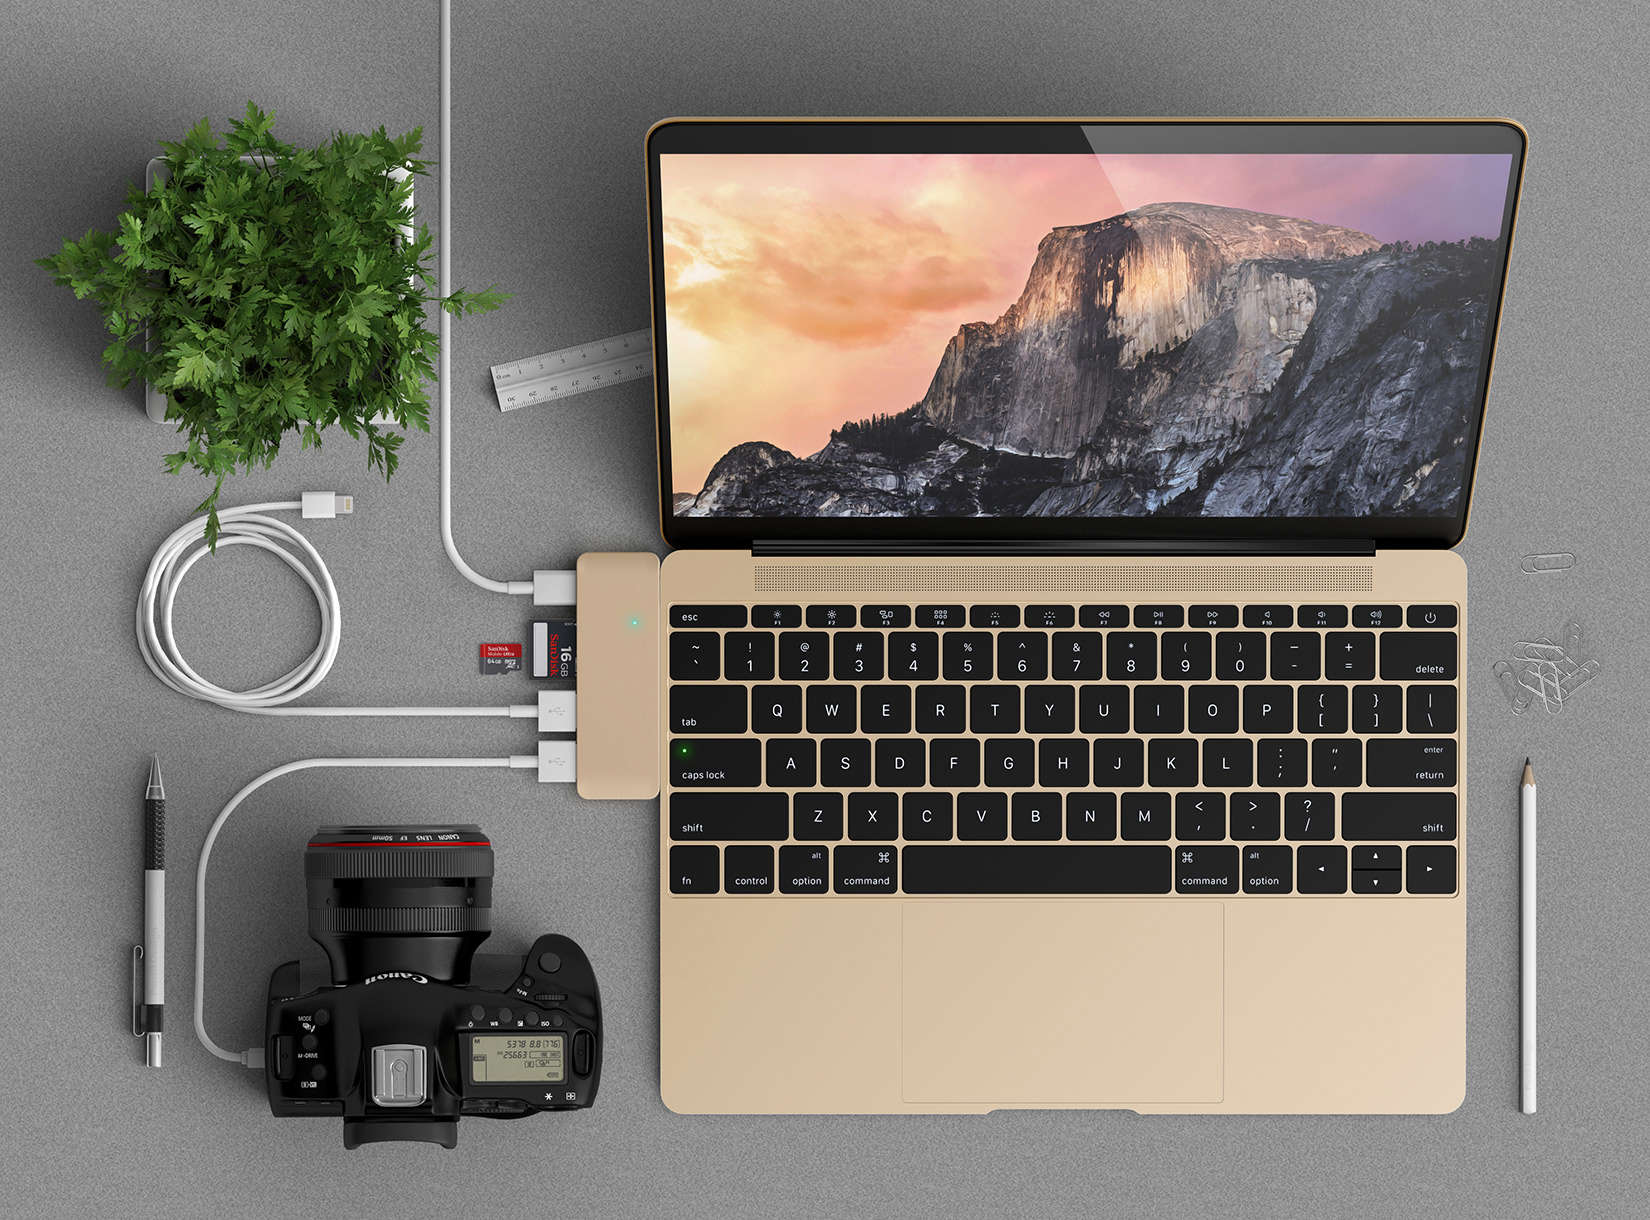 macbook-pro-usb-c-hub-by-satechi